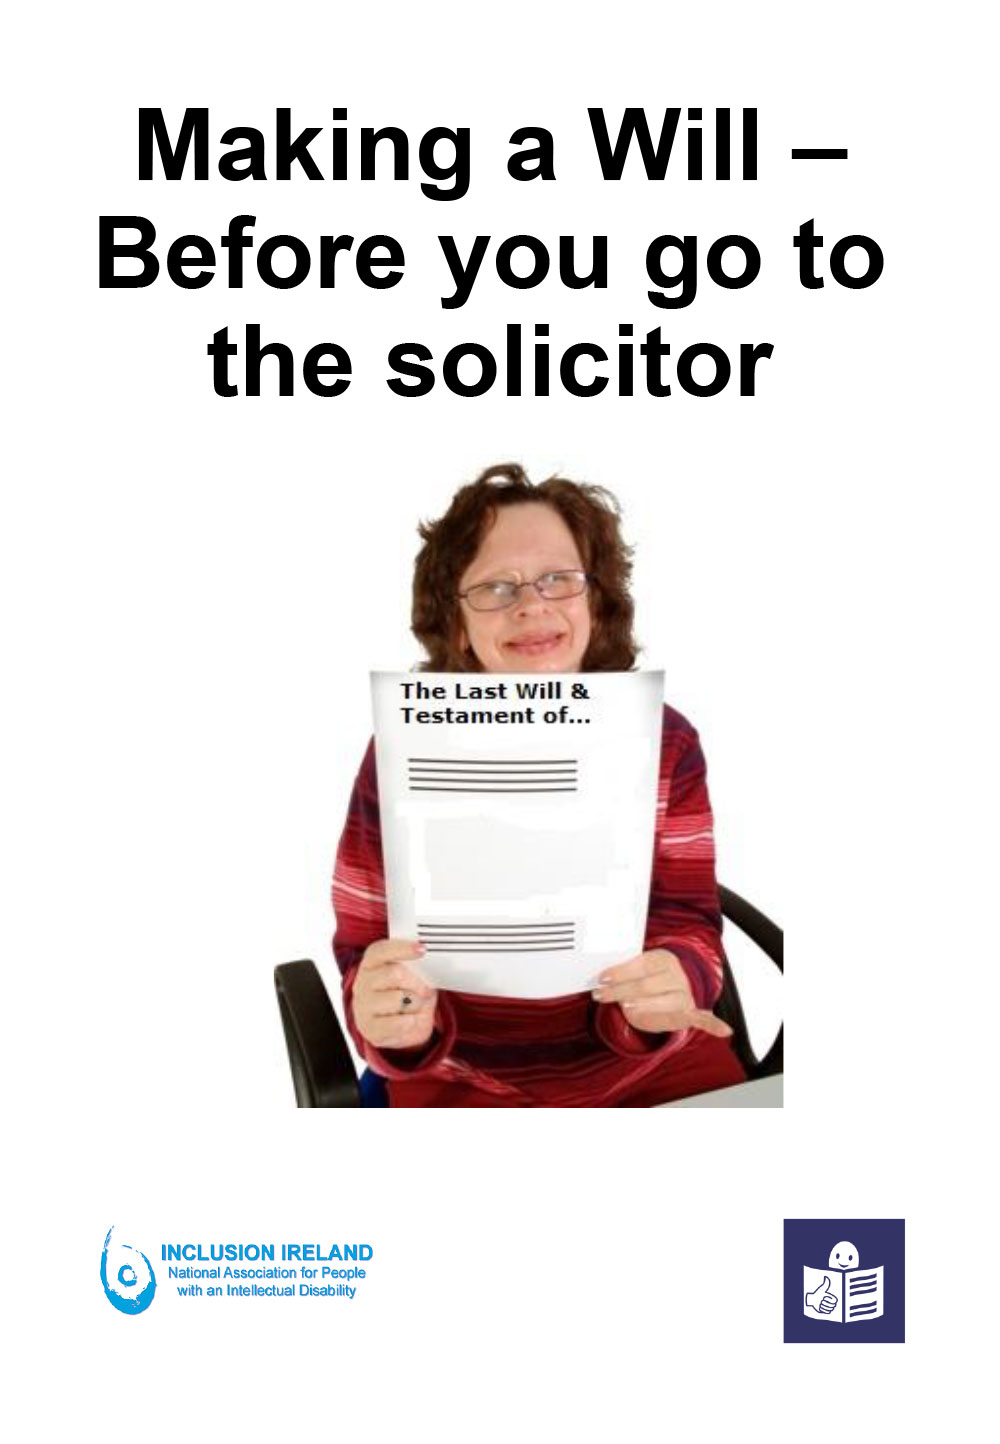 Making a Will – Before you go to the Solicitor